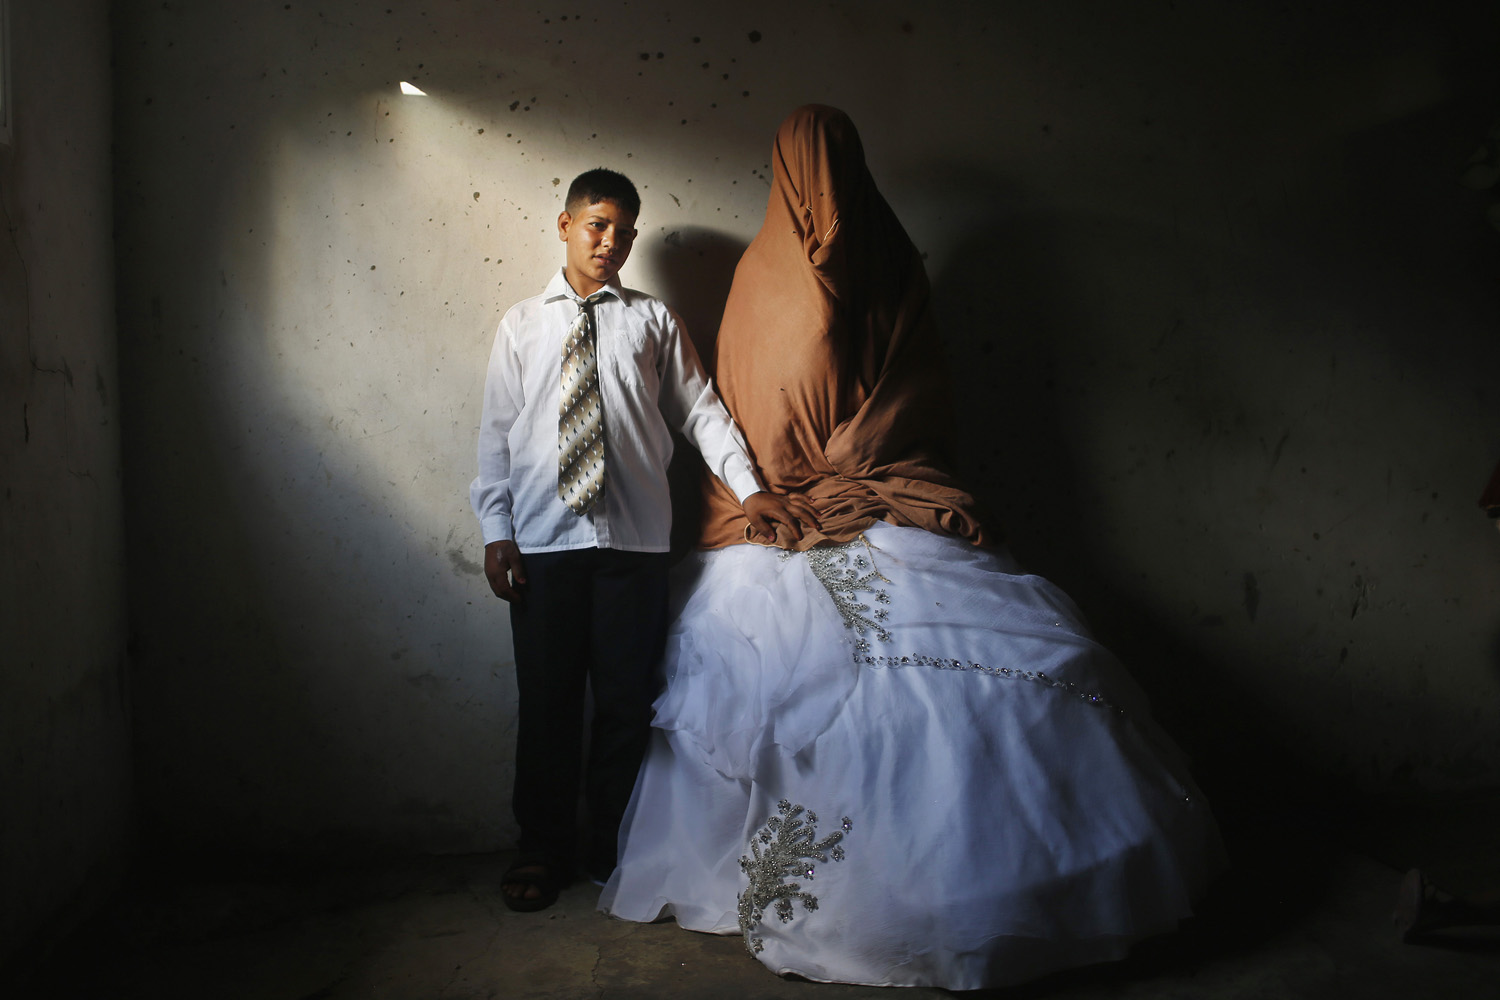 Sept. 24, 2013. Young Palestinian groom Ahmed Soboh, 15, and his bride Tala, 14, stand inside Tala's house which was damaged during an Israeli strike in 2009, during their wedding party in the town of Beit Lahiya, near the border between Israeli and northern Gaza Strip.